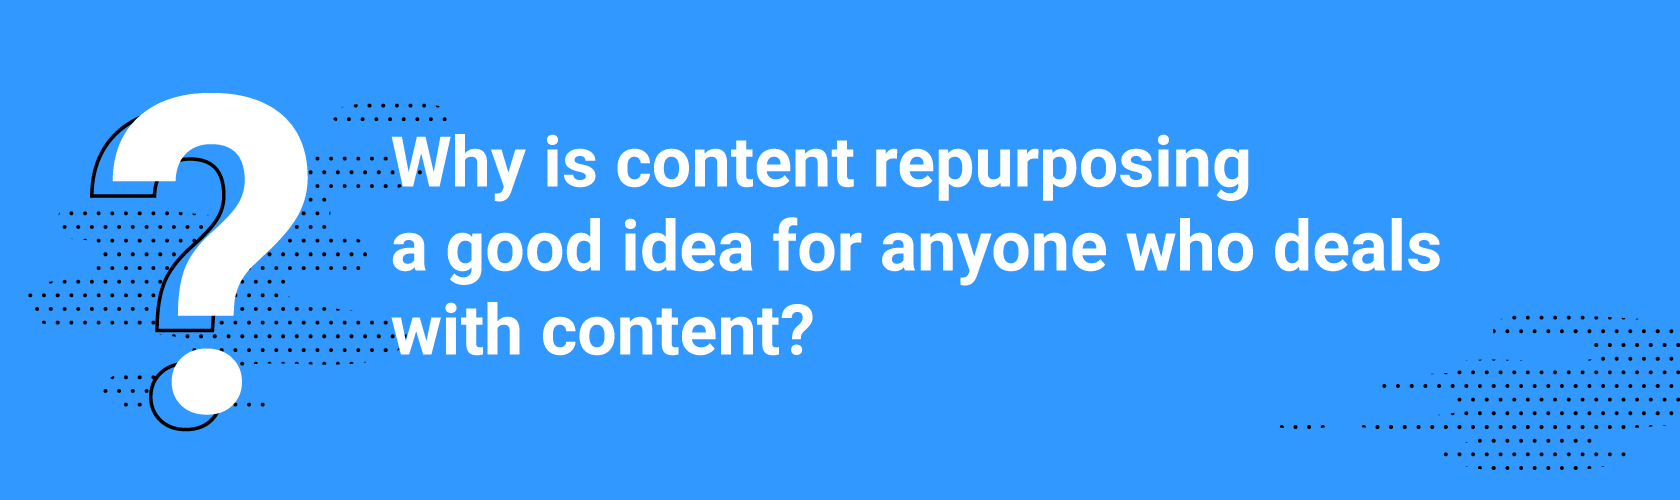 Why is content repurposing a good idea for anyone who deals with content?